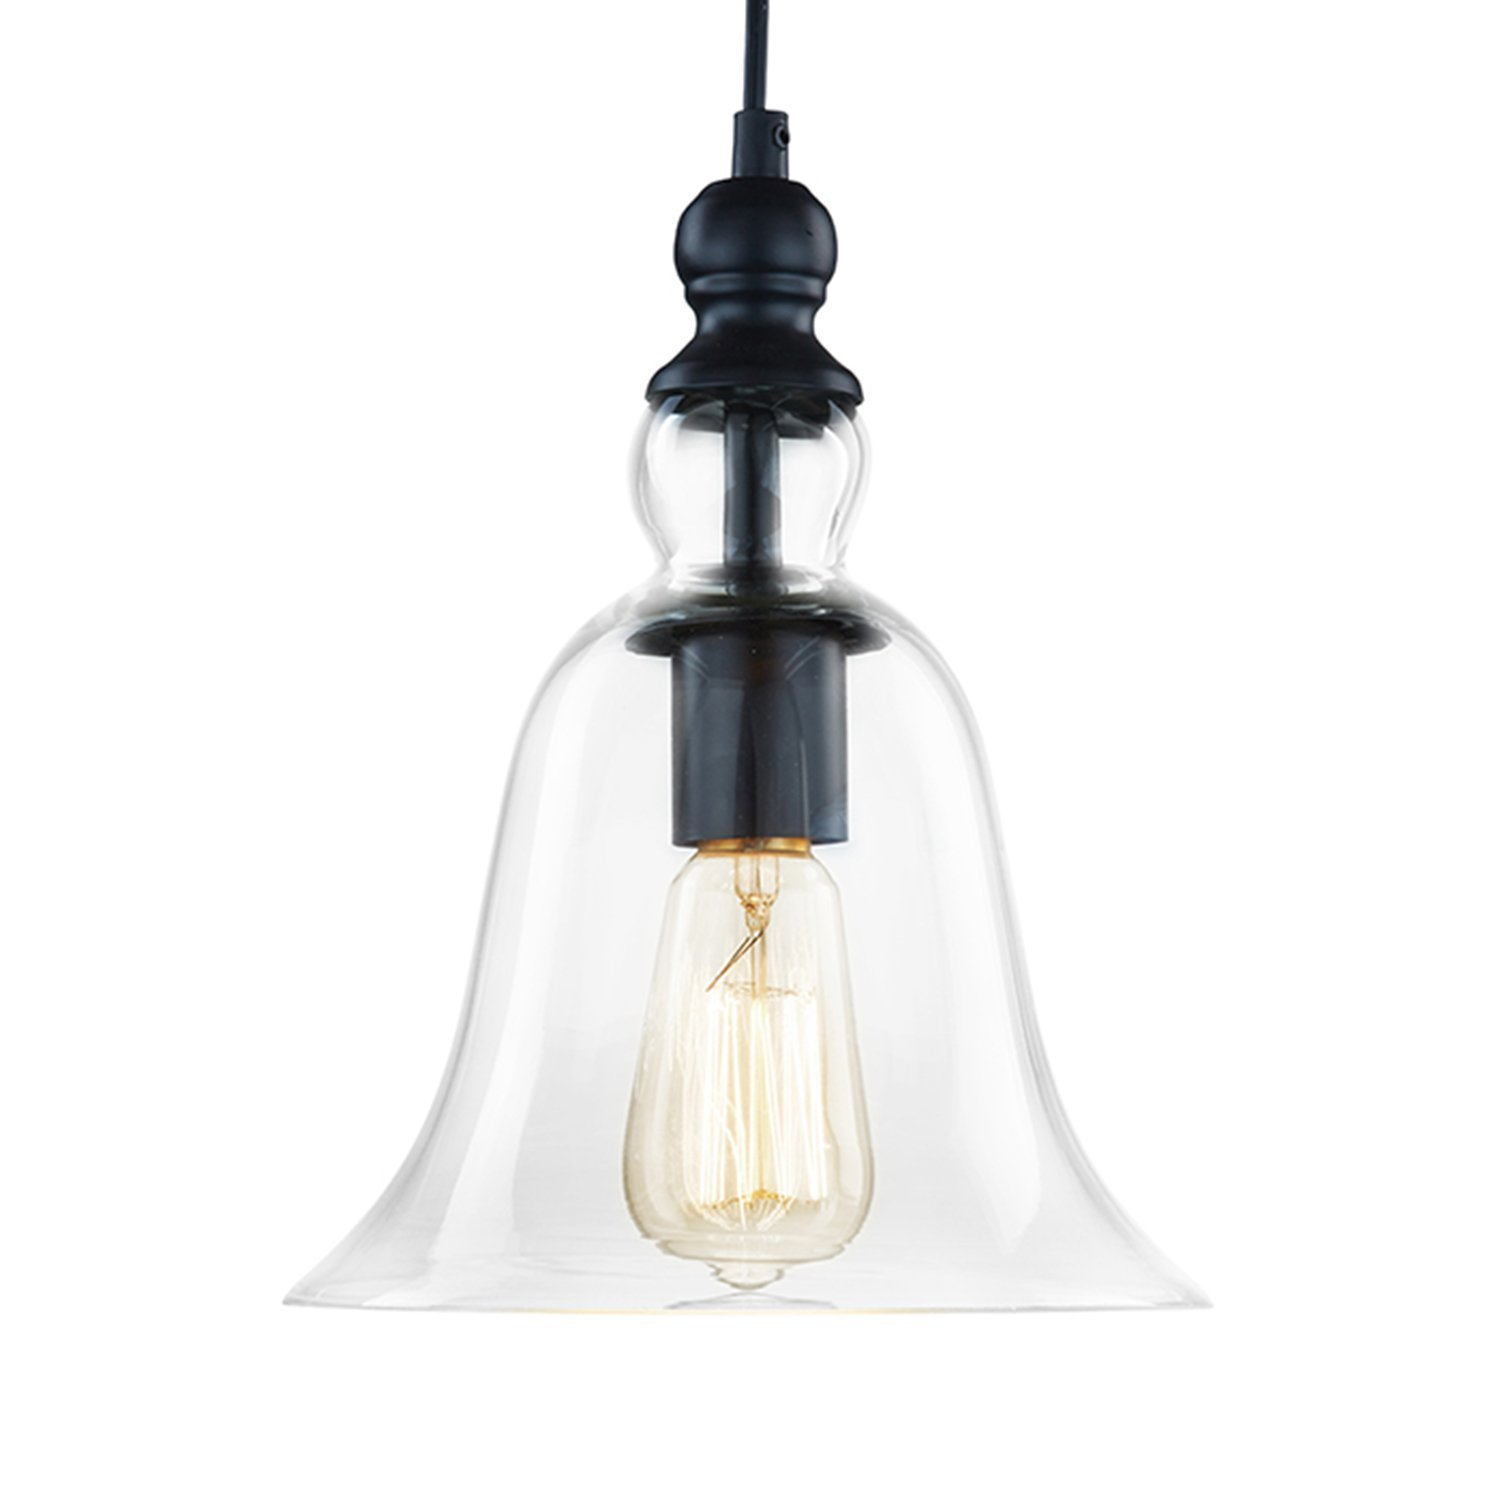 CLAXY Ecopower 1 Light Vintage Hanging Big Bell Glass Shade ...